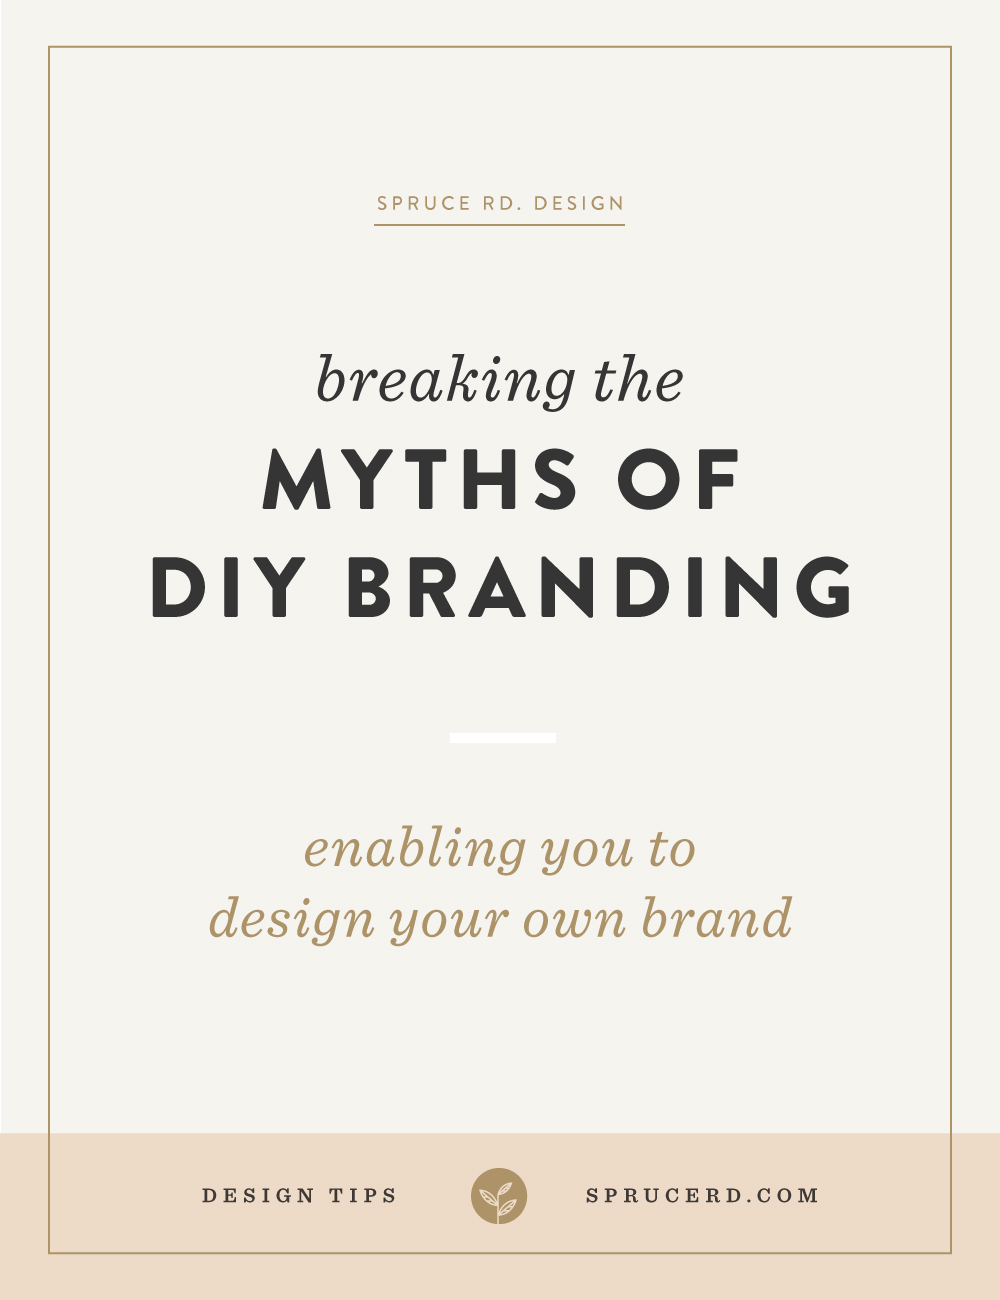 Breaking the myths of DIY branding | Spruce Rd.